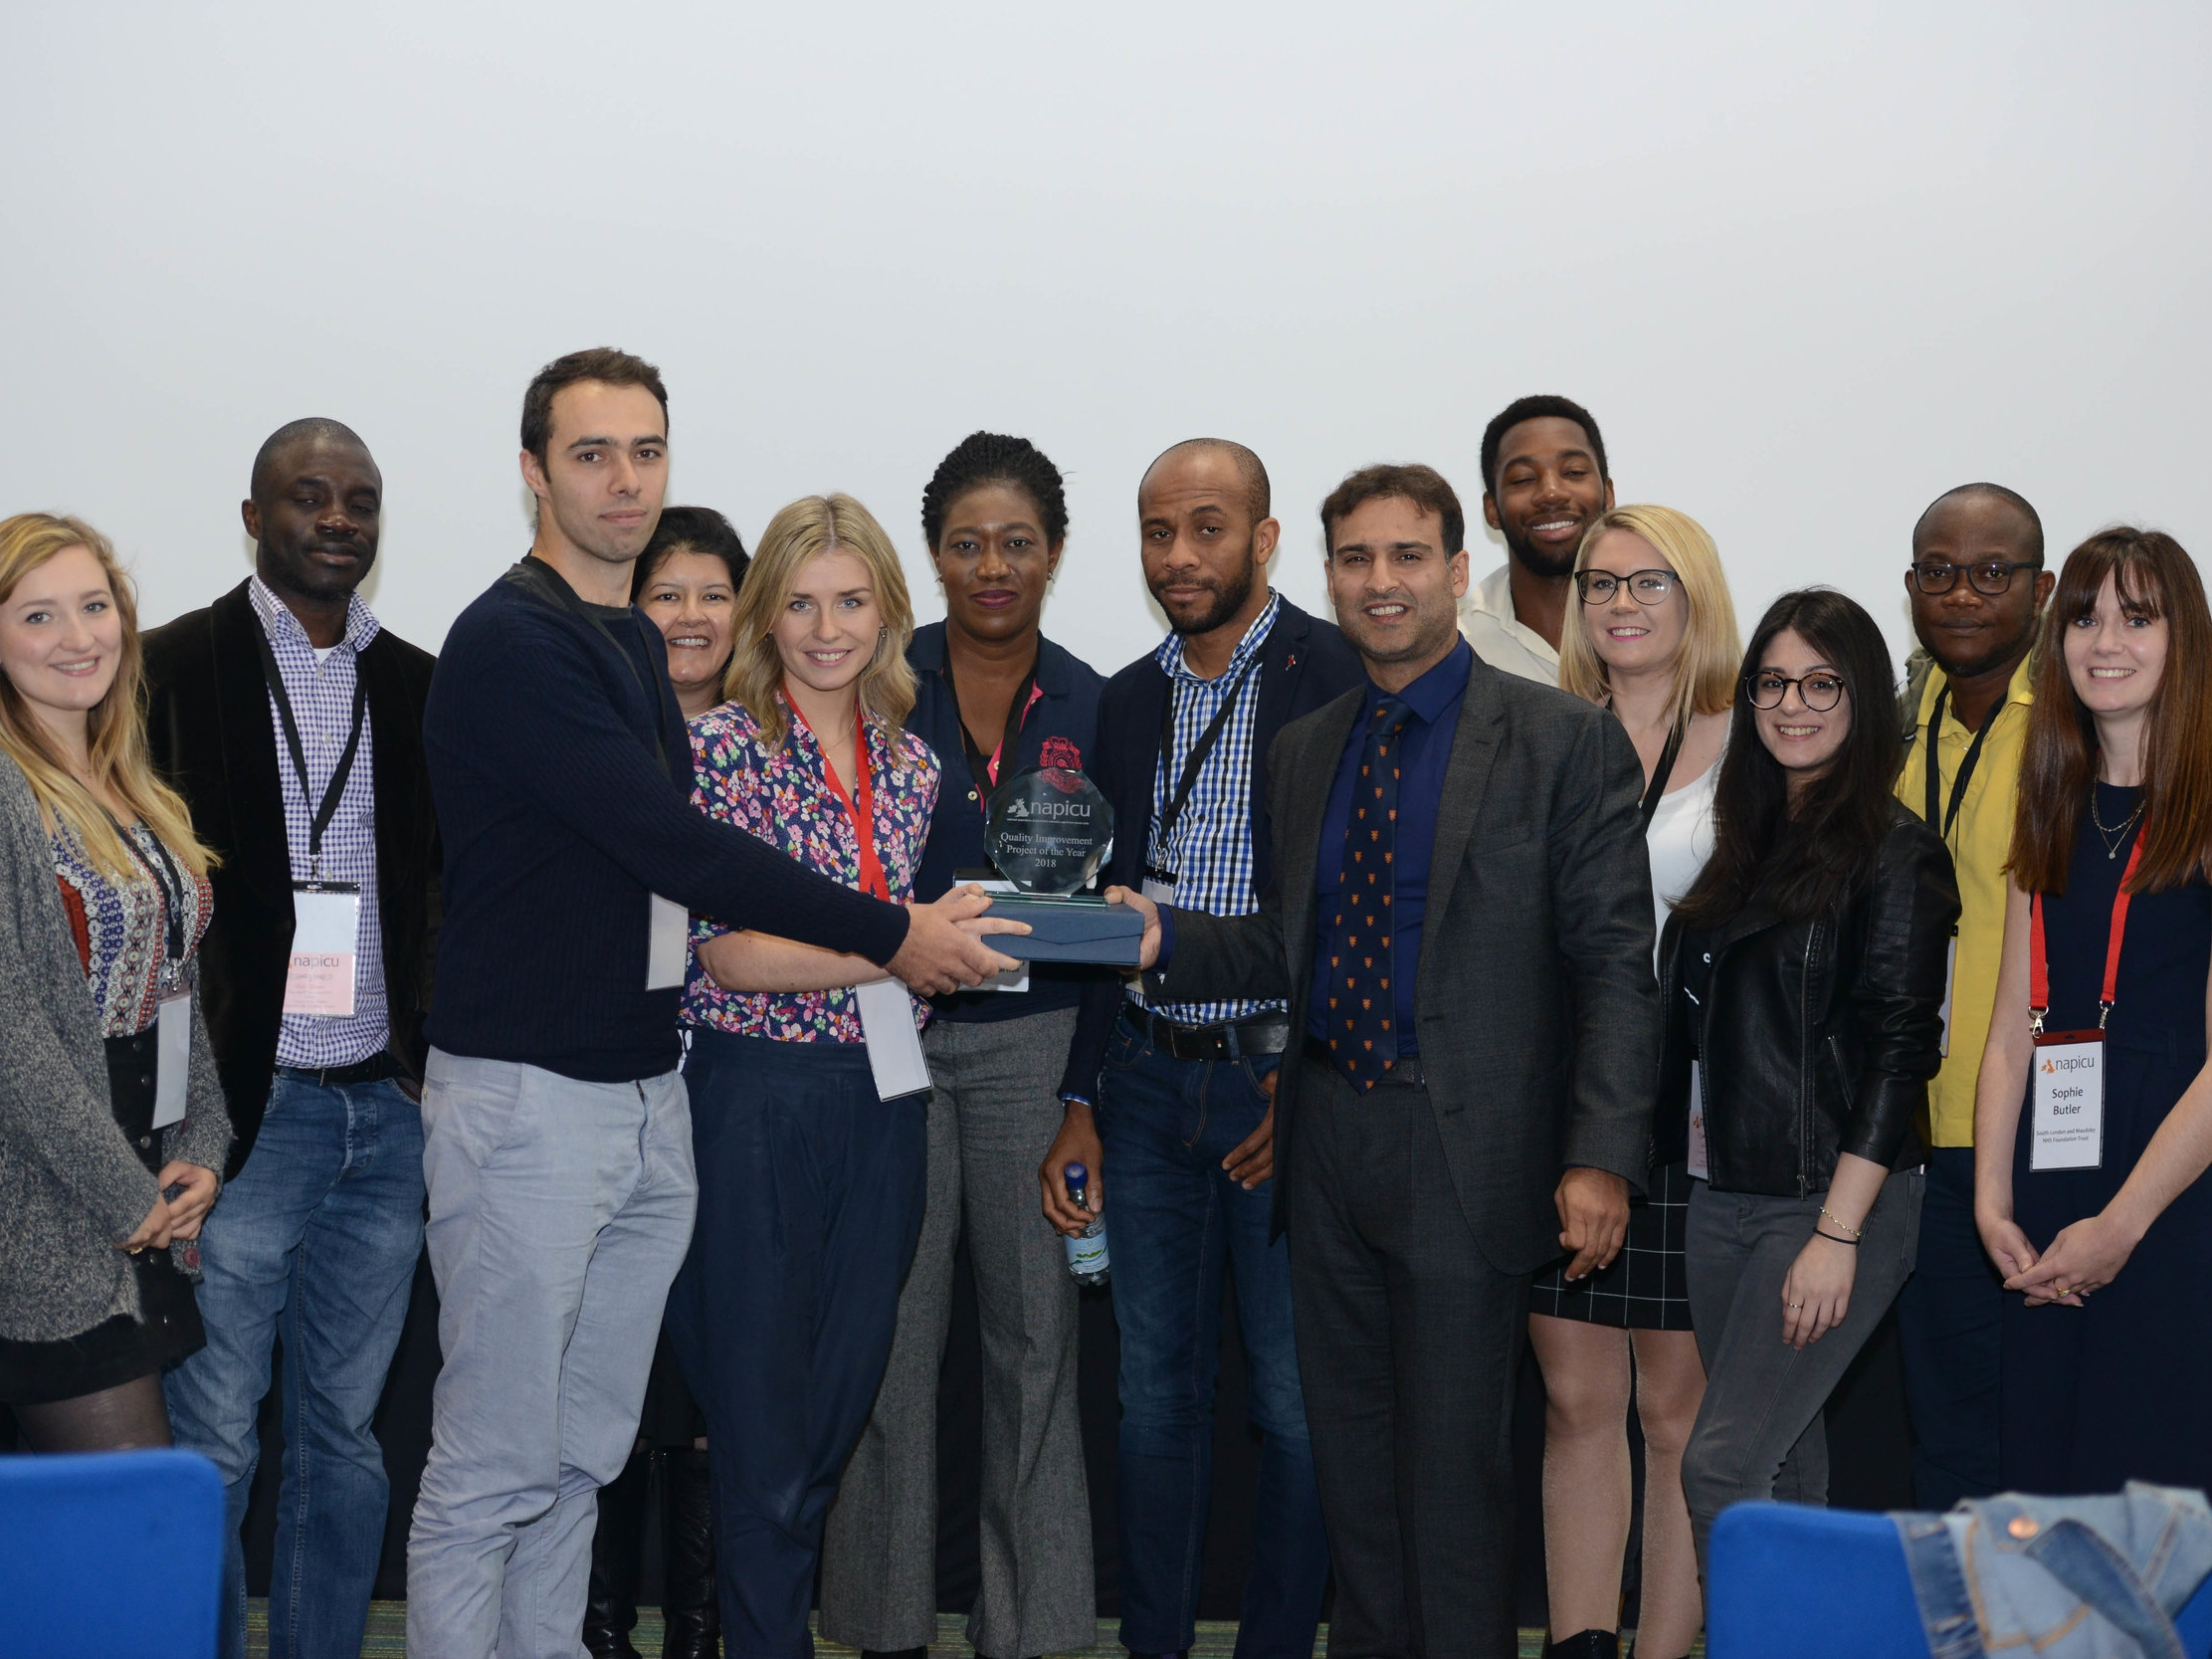 Hospital Rooms and Eileen Skellern 1 win the Quality Improvement Project of the Year 2018 from the National Association of Psychiatric Intensive Care Units -